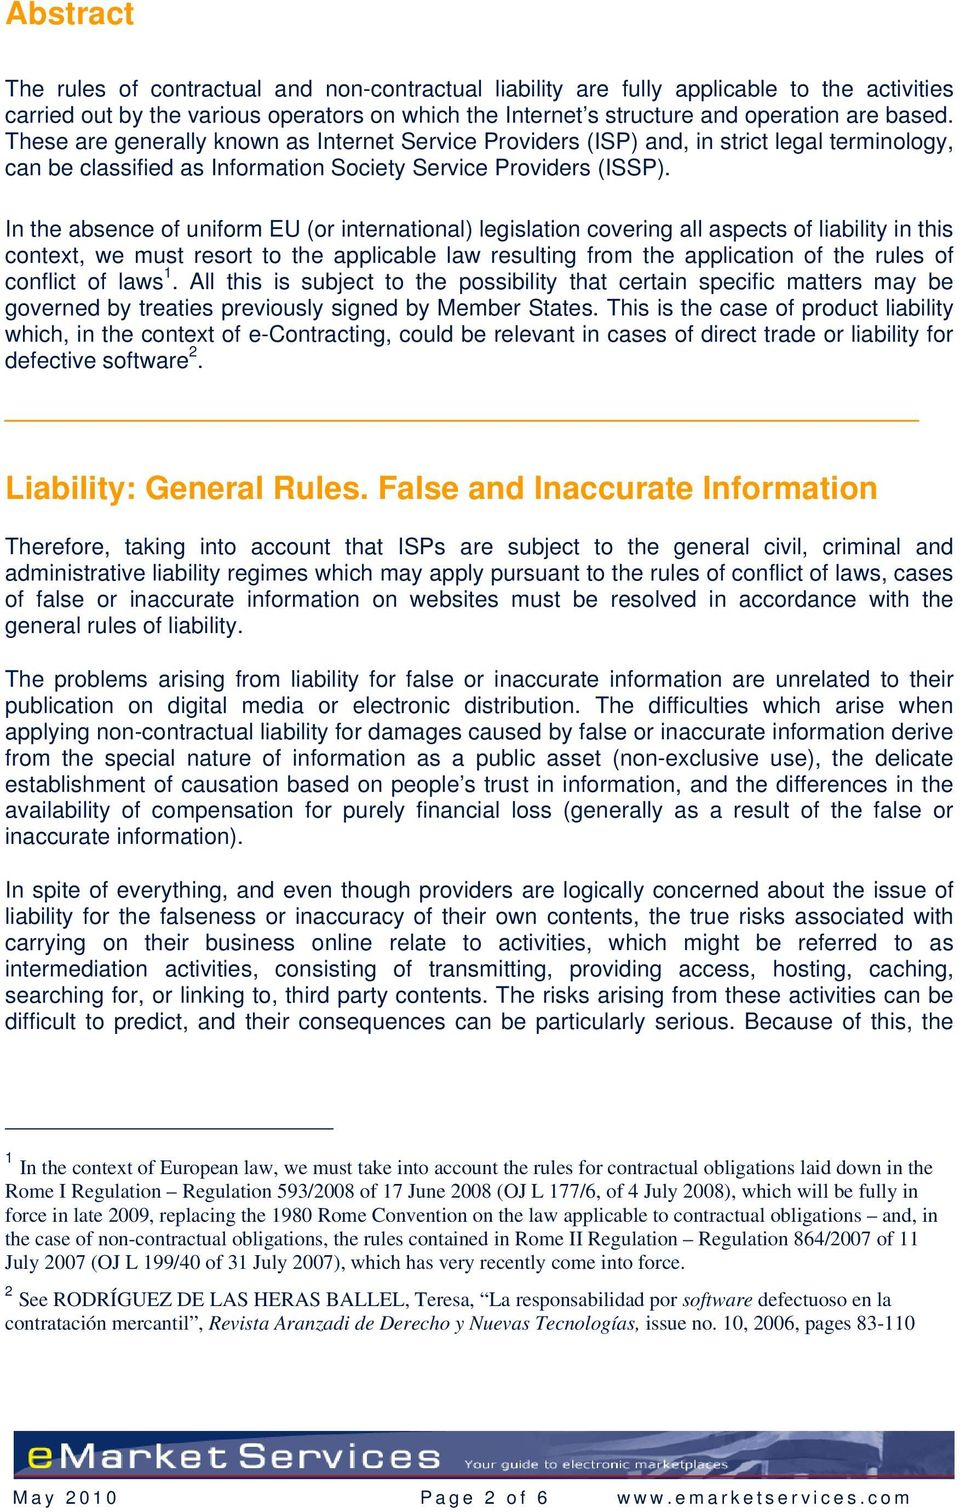 In the absence of uniform EU (or international) legislation covering all aspects of liability in this context, we must resort to the applicable law resulting from the application of the rules of